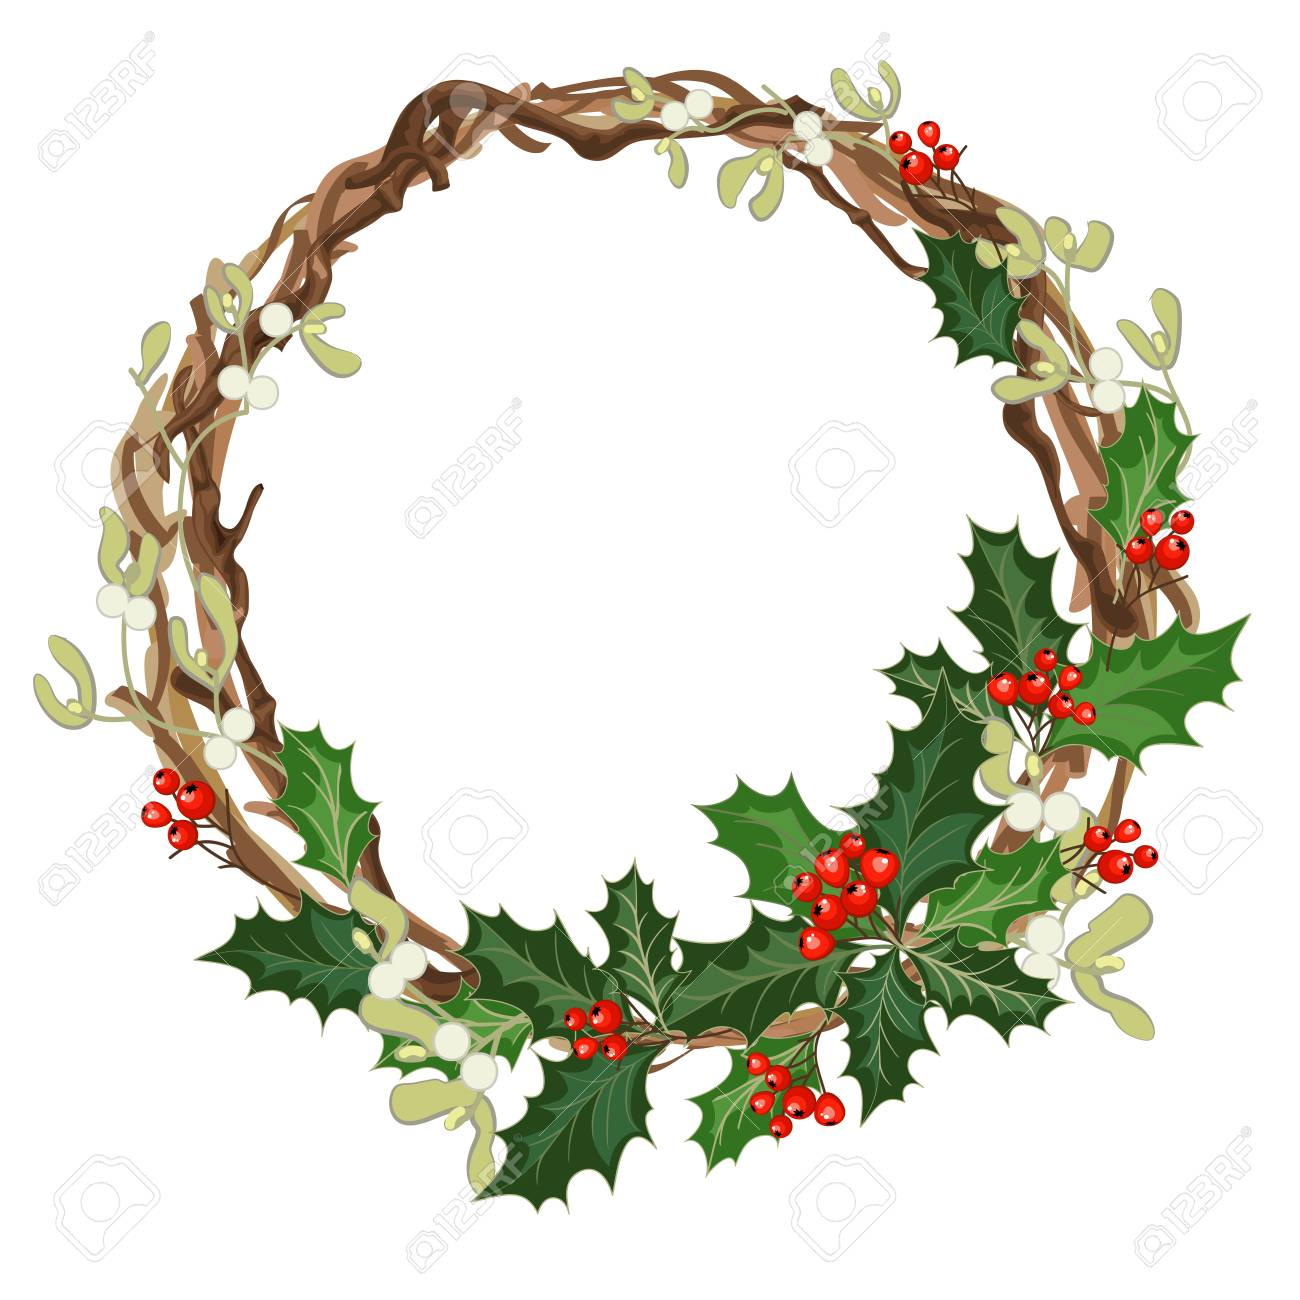 christmas decorations with holly berries mistletoe and decorative elements design element for christmas